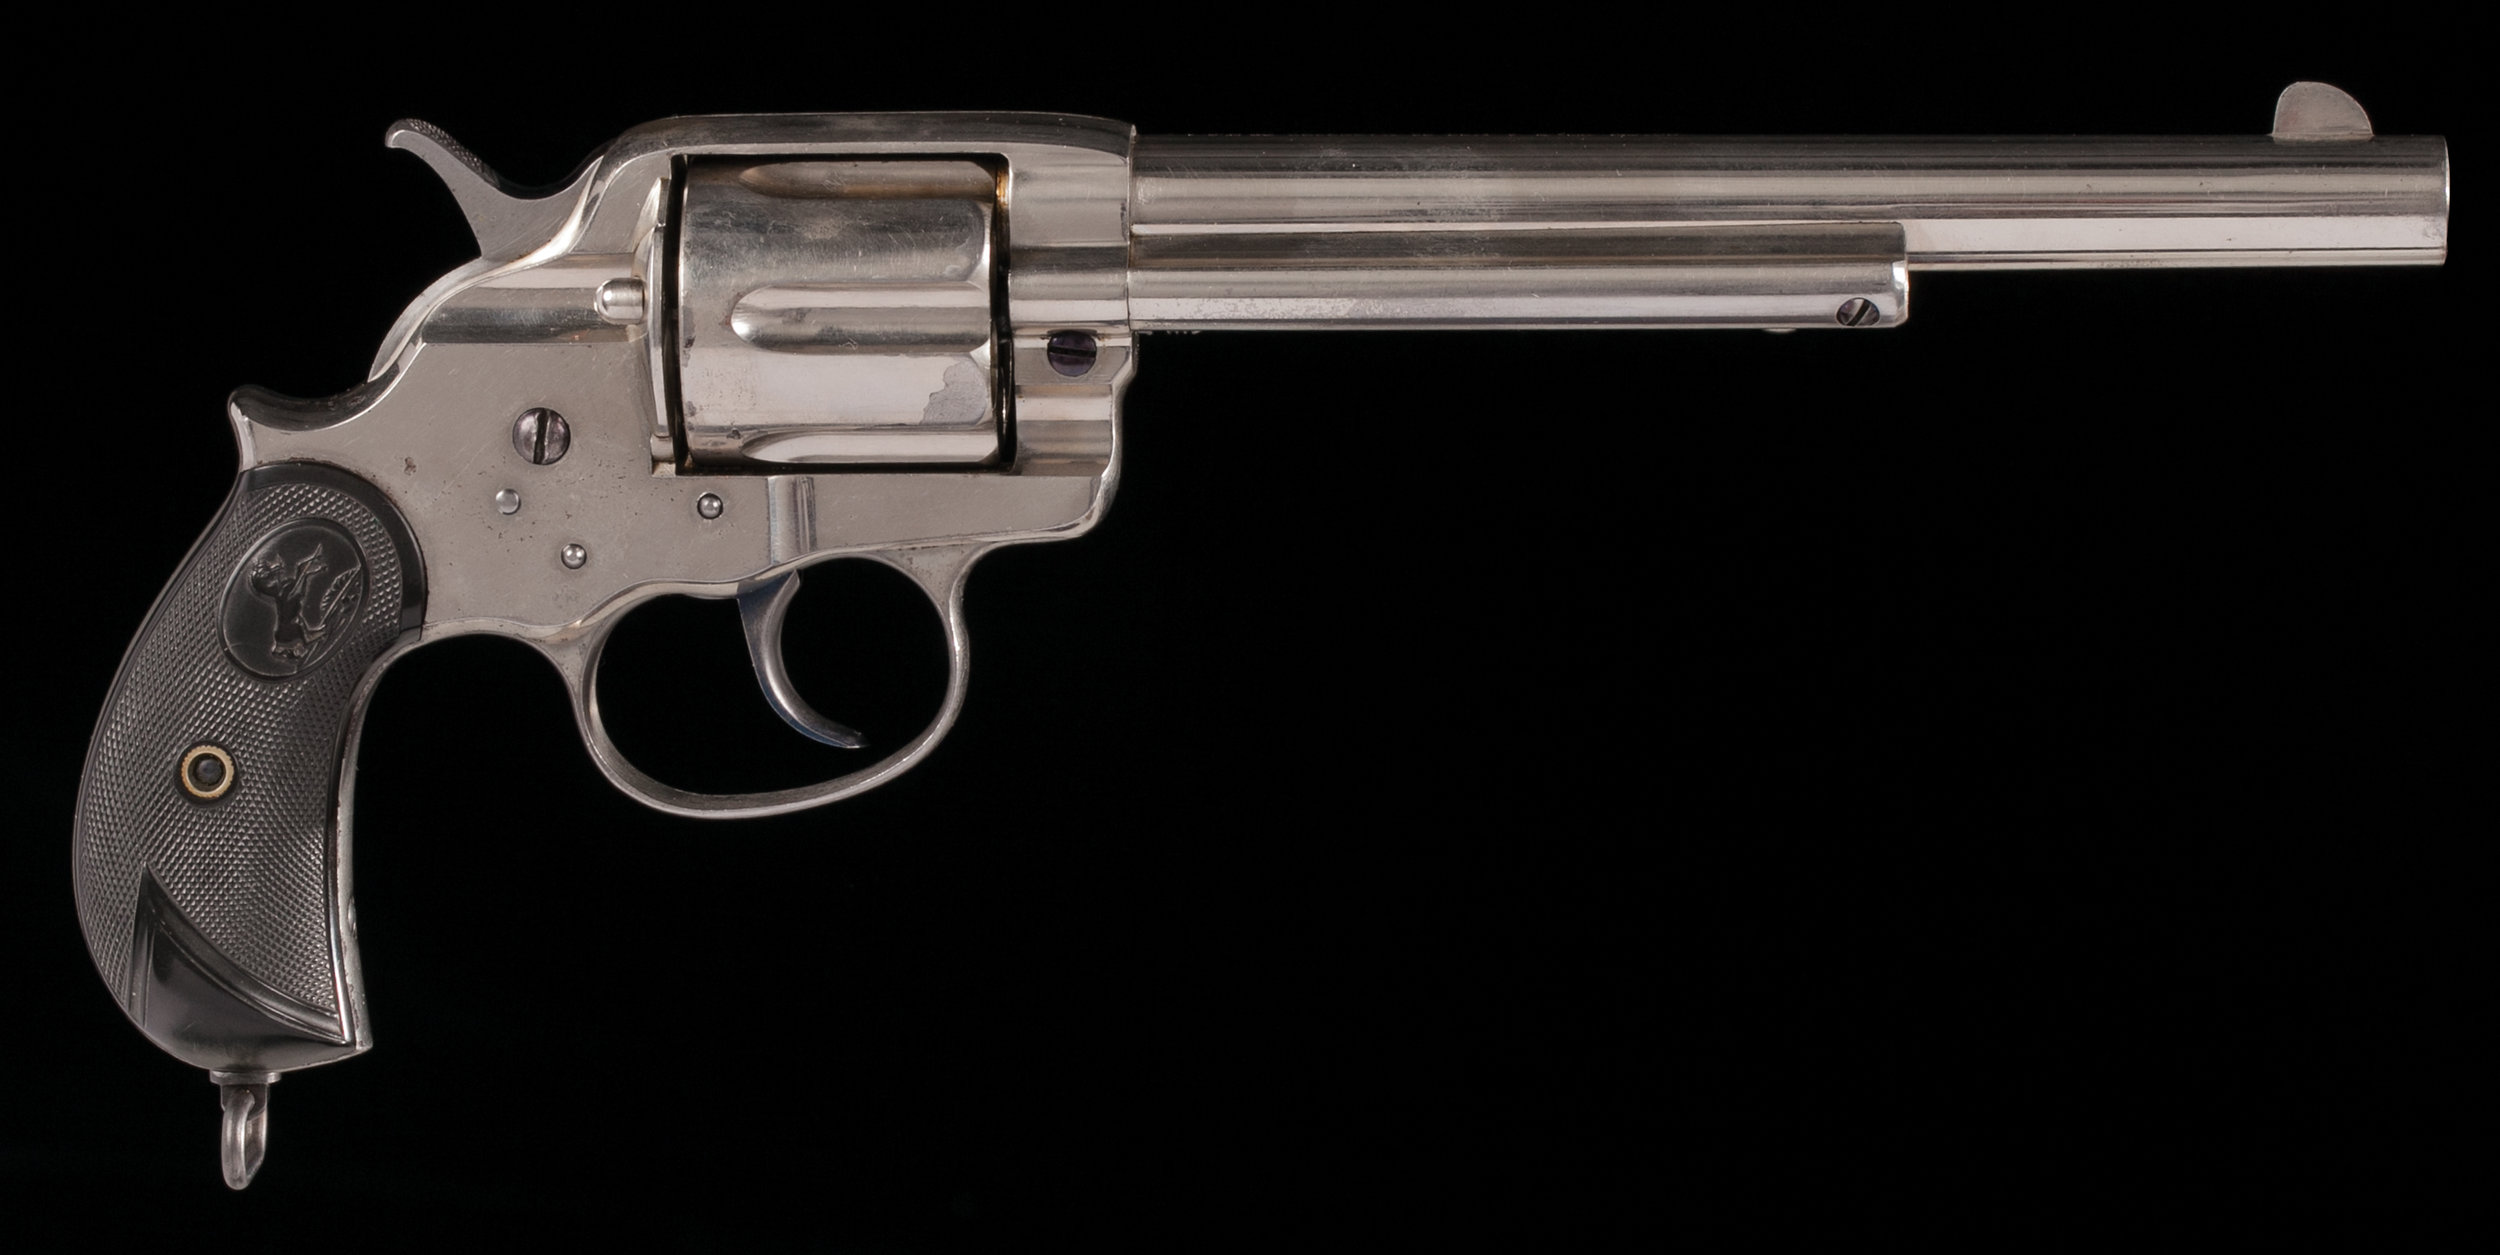 Lot 396: Colt 1878 Double Action Revolver.   Brian Lebel's Mesa Auction - January 21, 2017     Sold $4,425